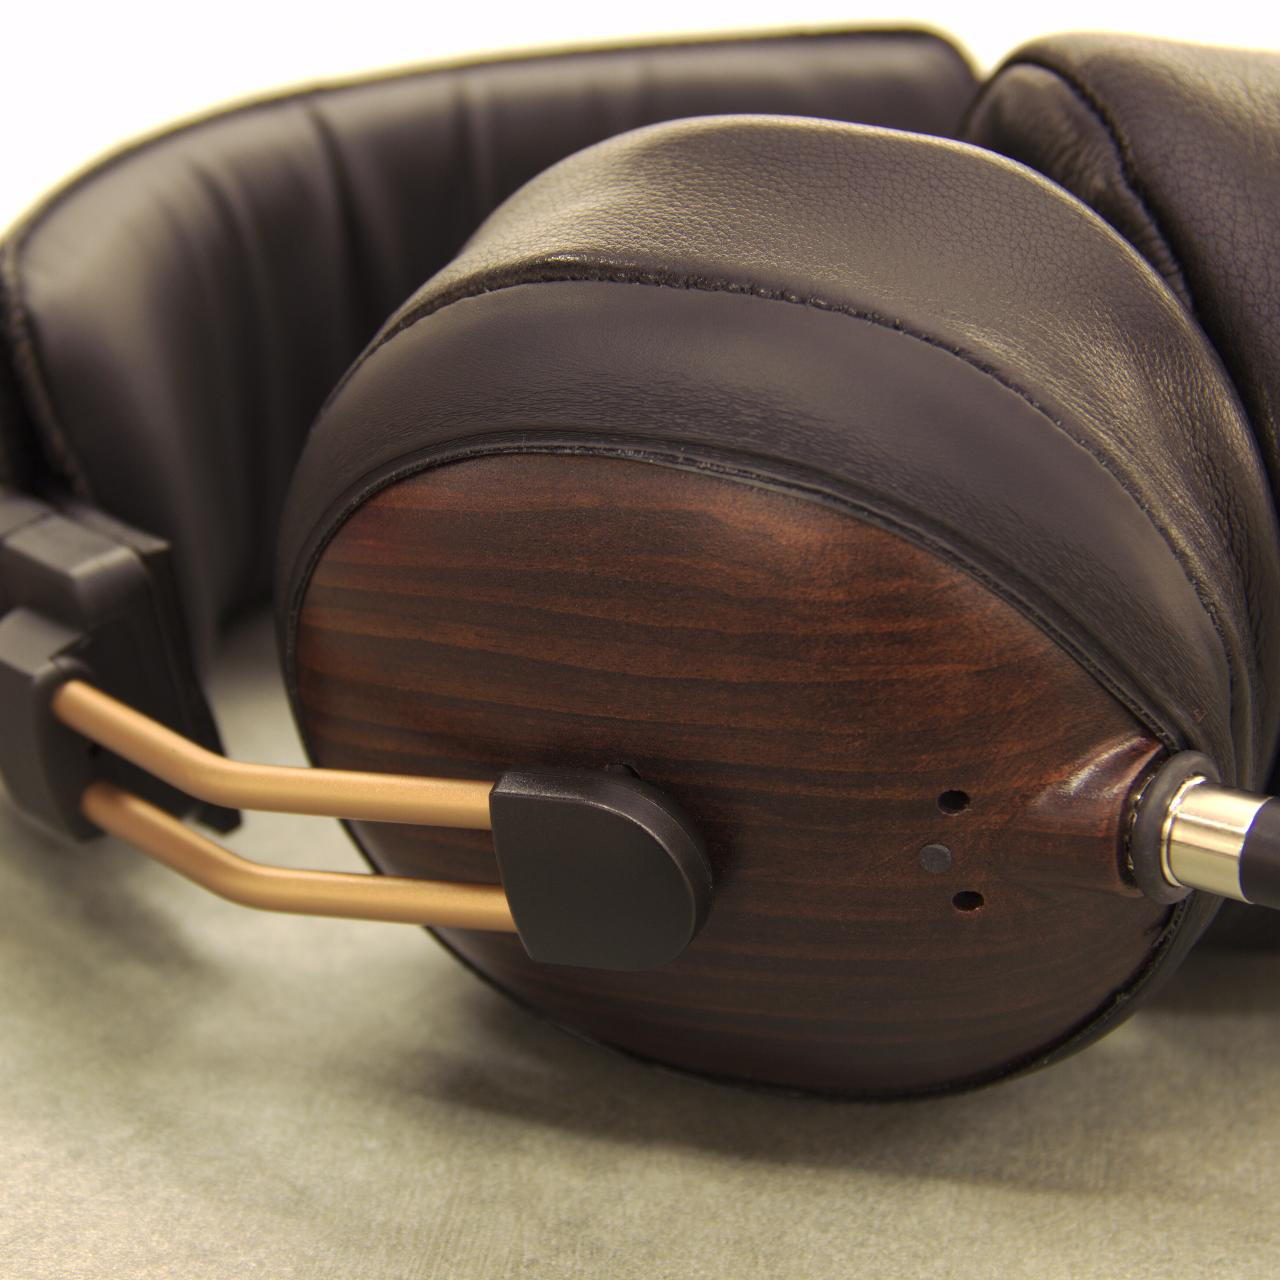 ZMF Blackwood, the most beautiful cups ever.